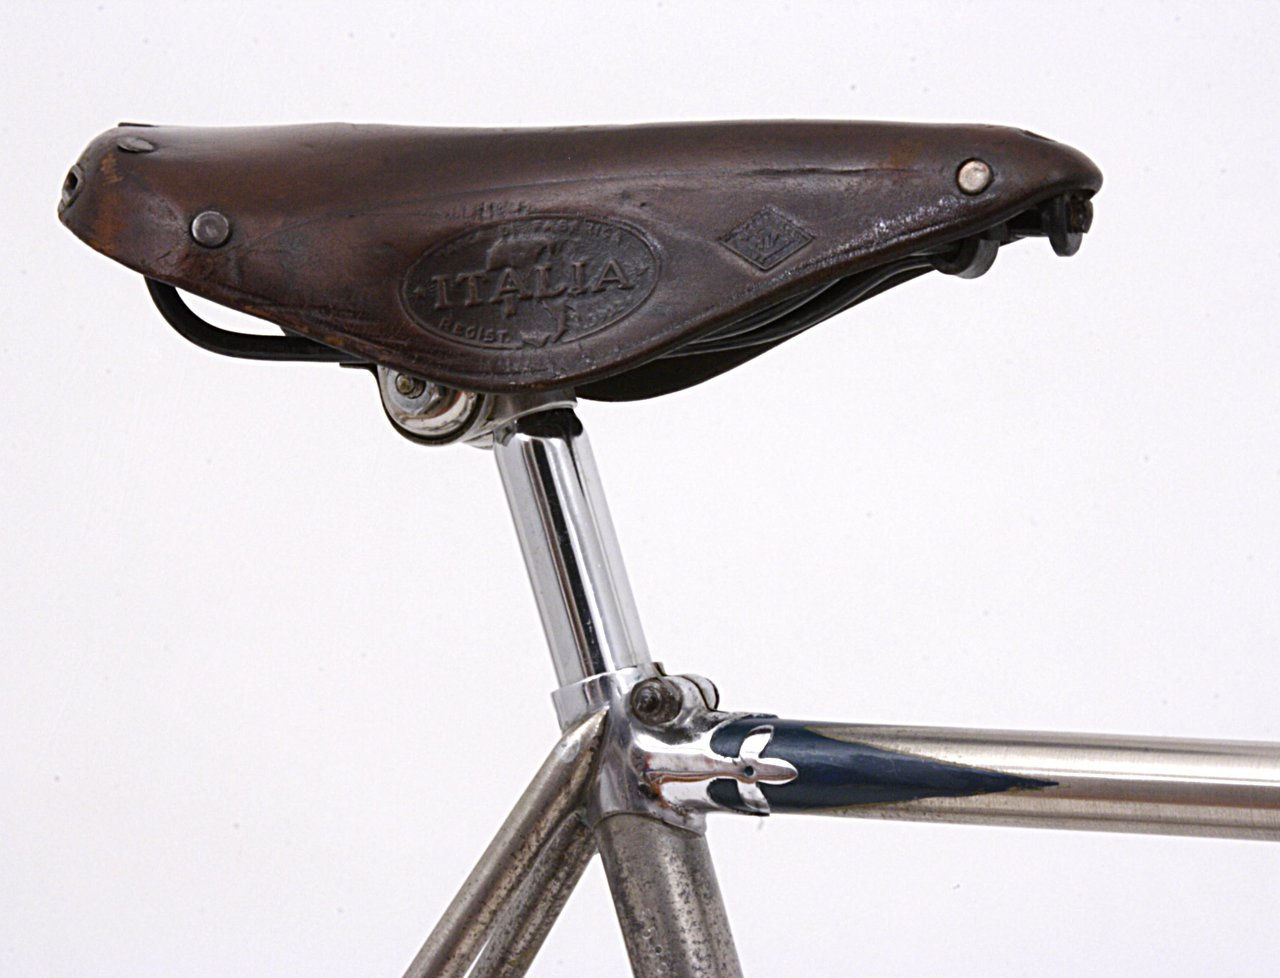 gloria italia saddle, seatlug & top tube